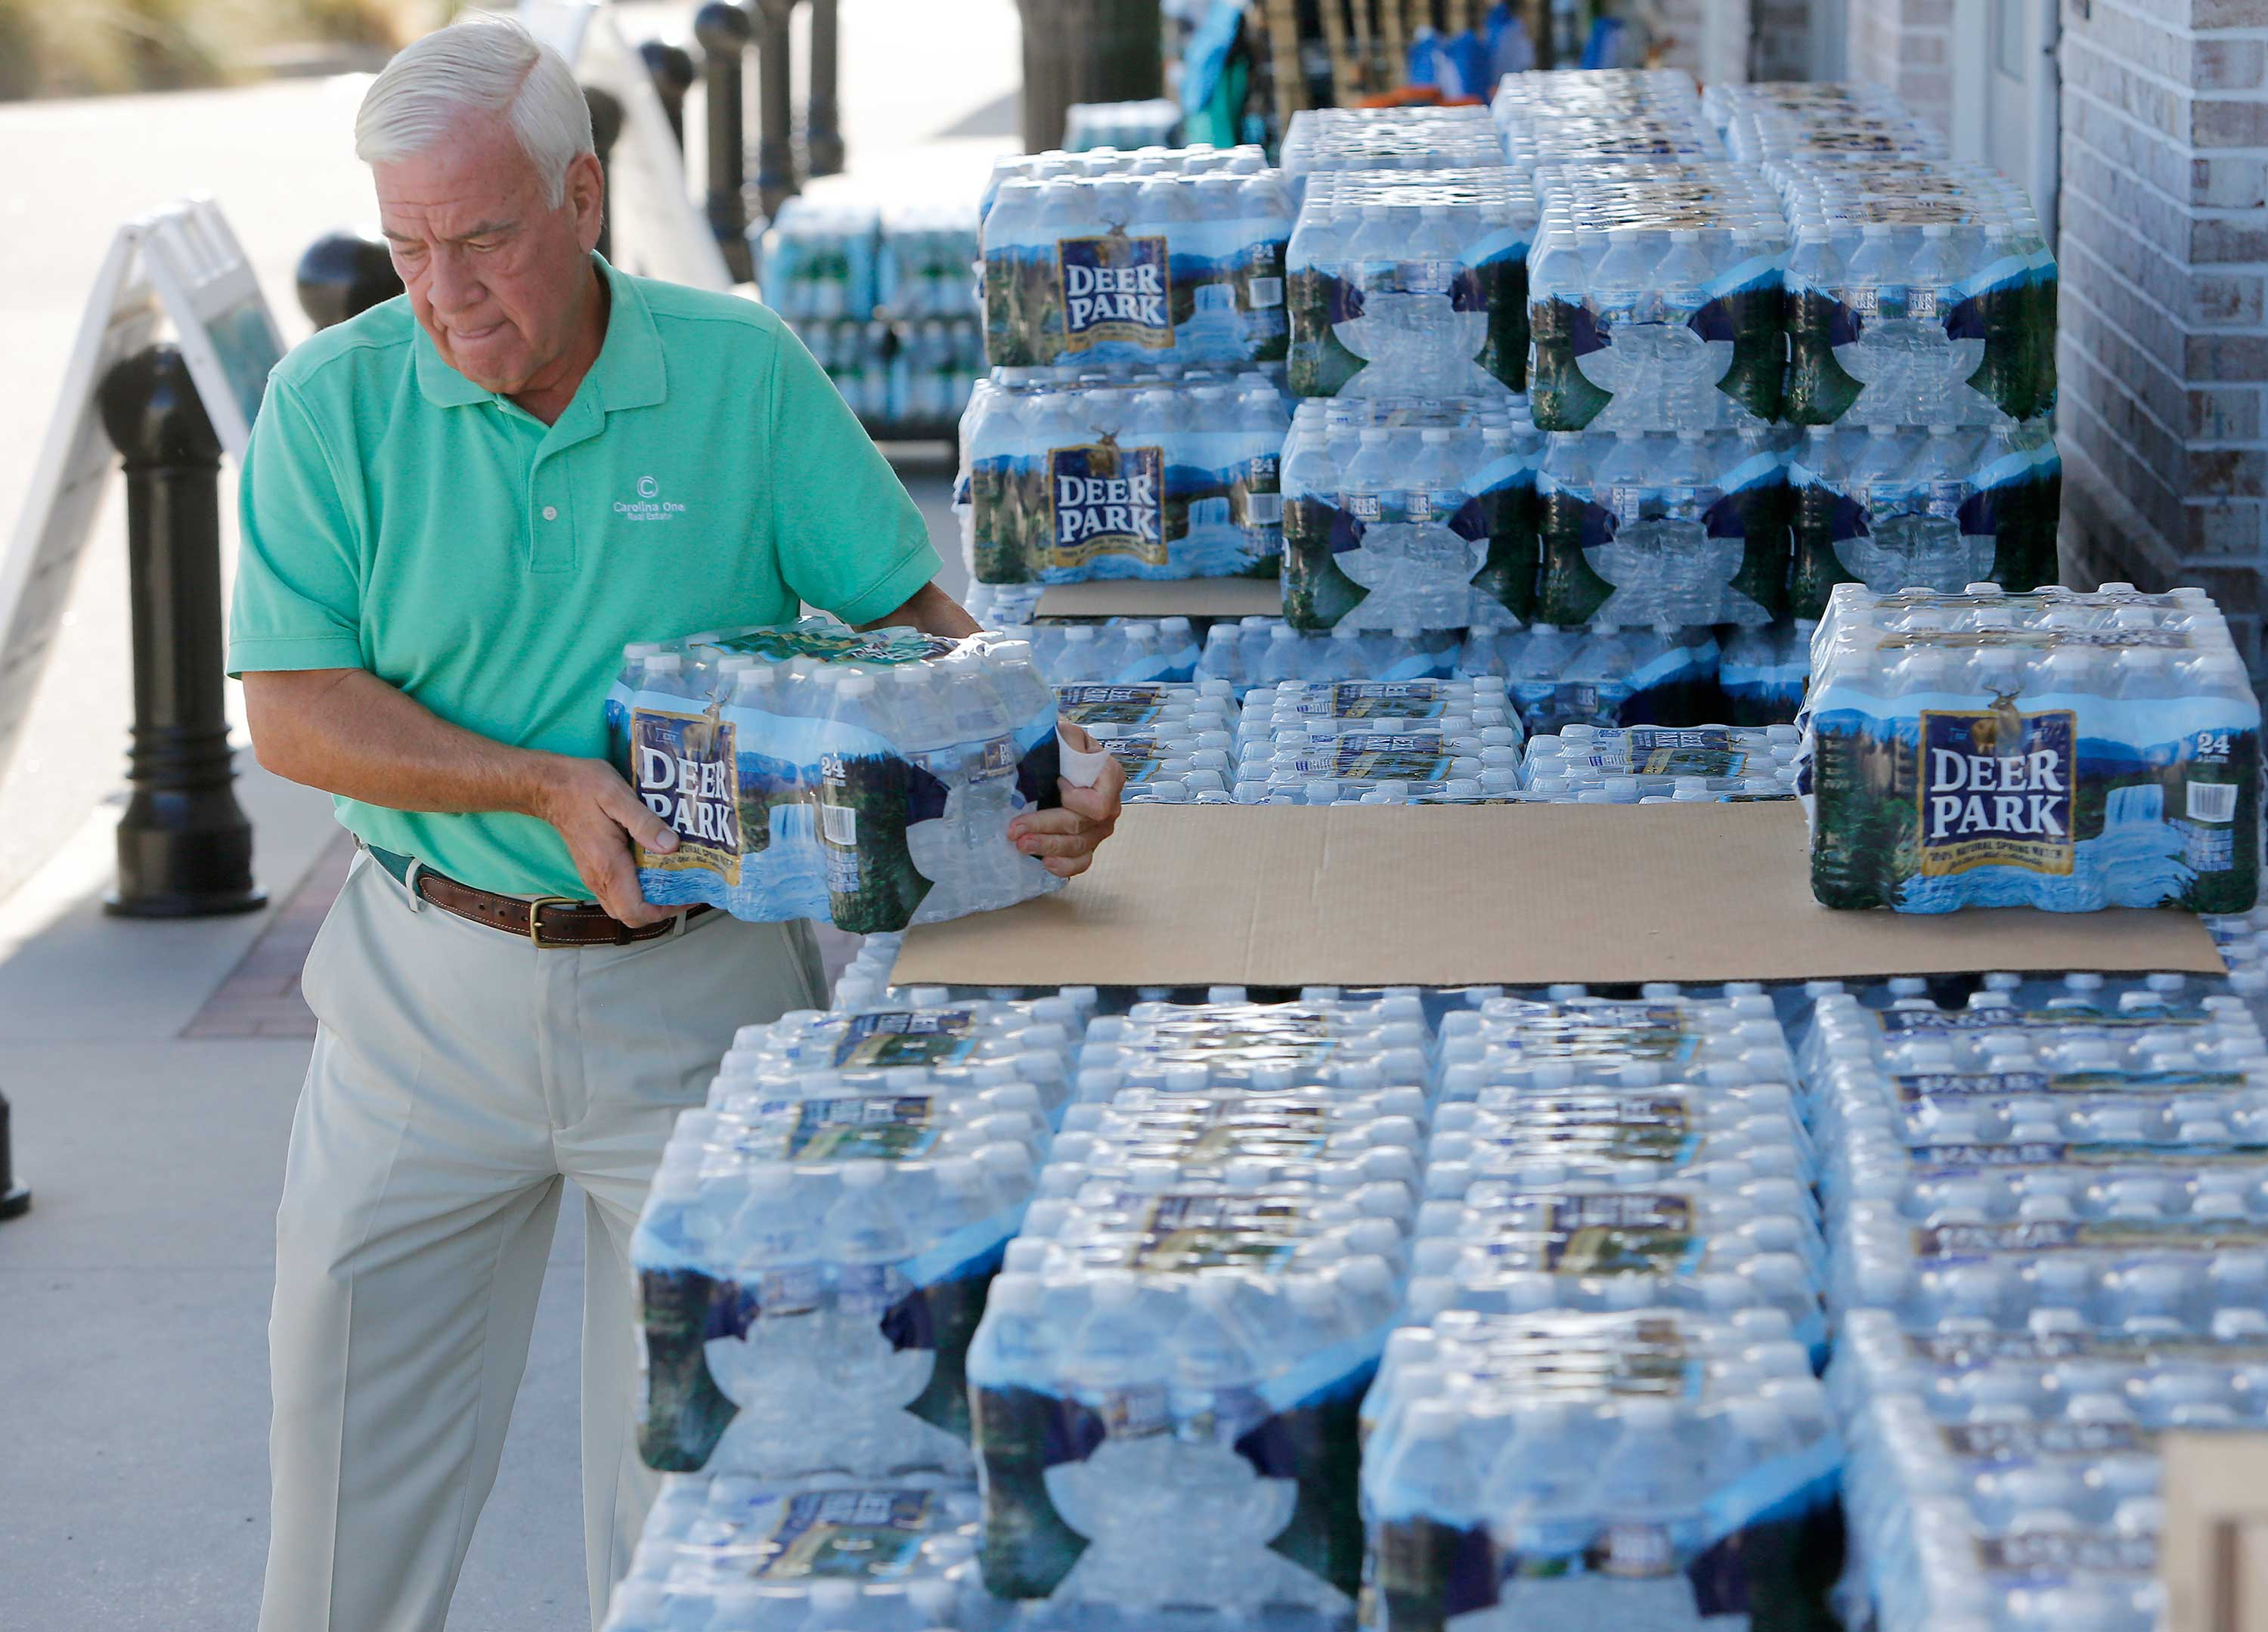 "<div class=""meta image-caption""><div class=""origin-logo origin-image none""><span>none</span></div><span class=""caption-text"">Larry Pierson, from the Isle of Palms, S.C., purchases bottled water from the Harris Teeter grocery store on the Isle of Palms in preparation for Hurricane Florence on Monday. (Mic Smith/AP Photo)</span></div>"